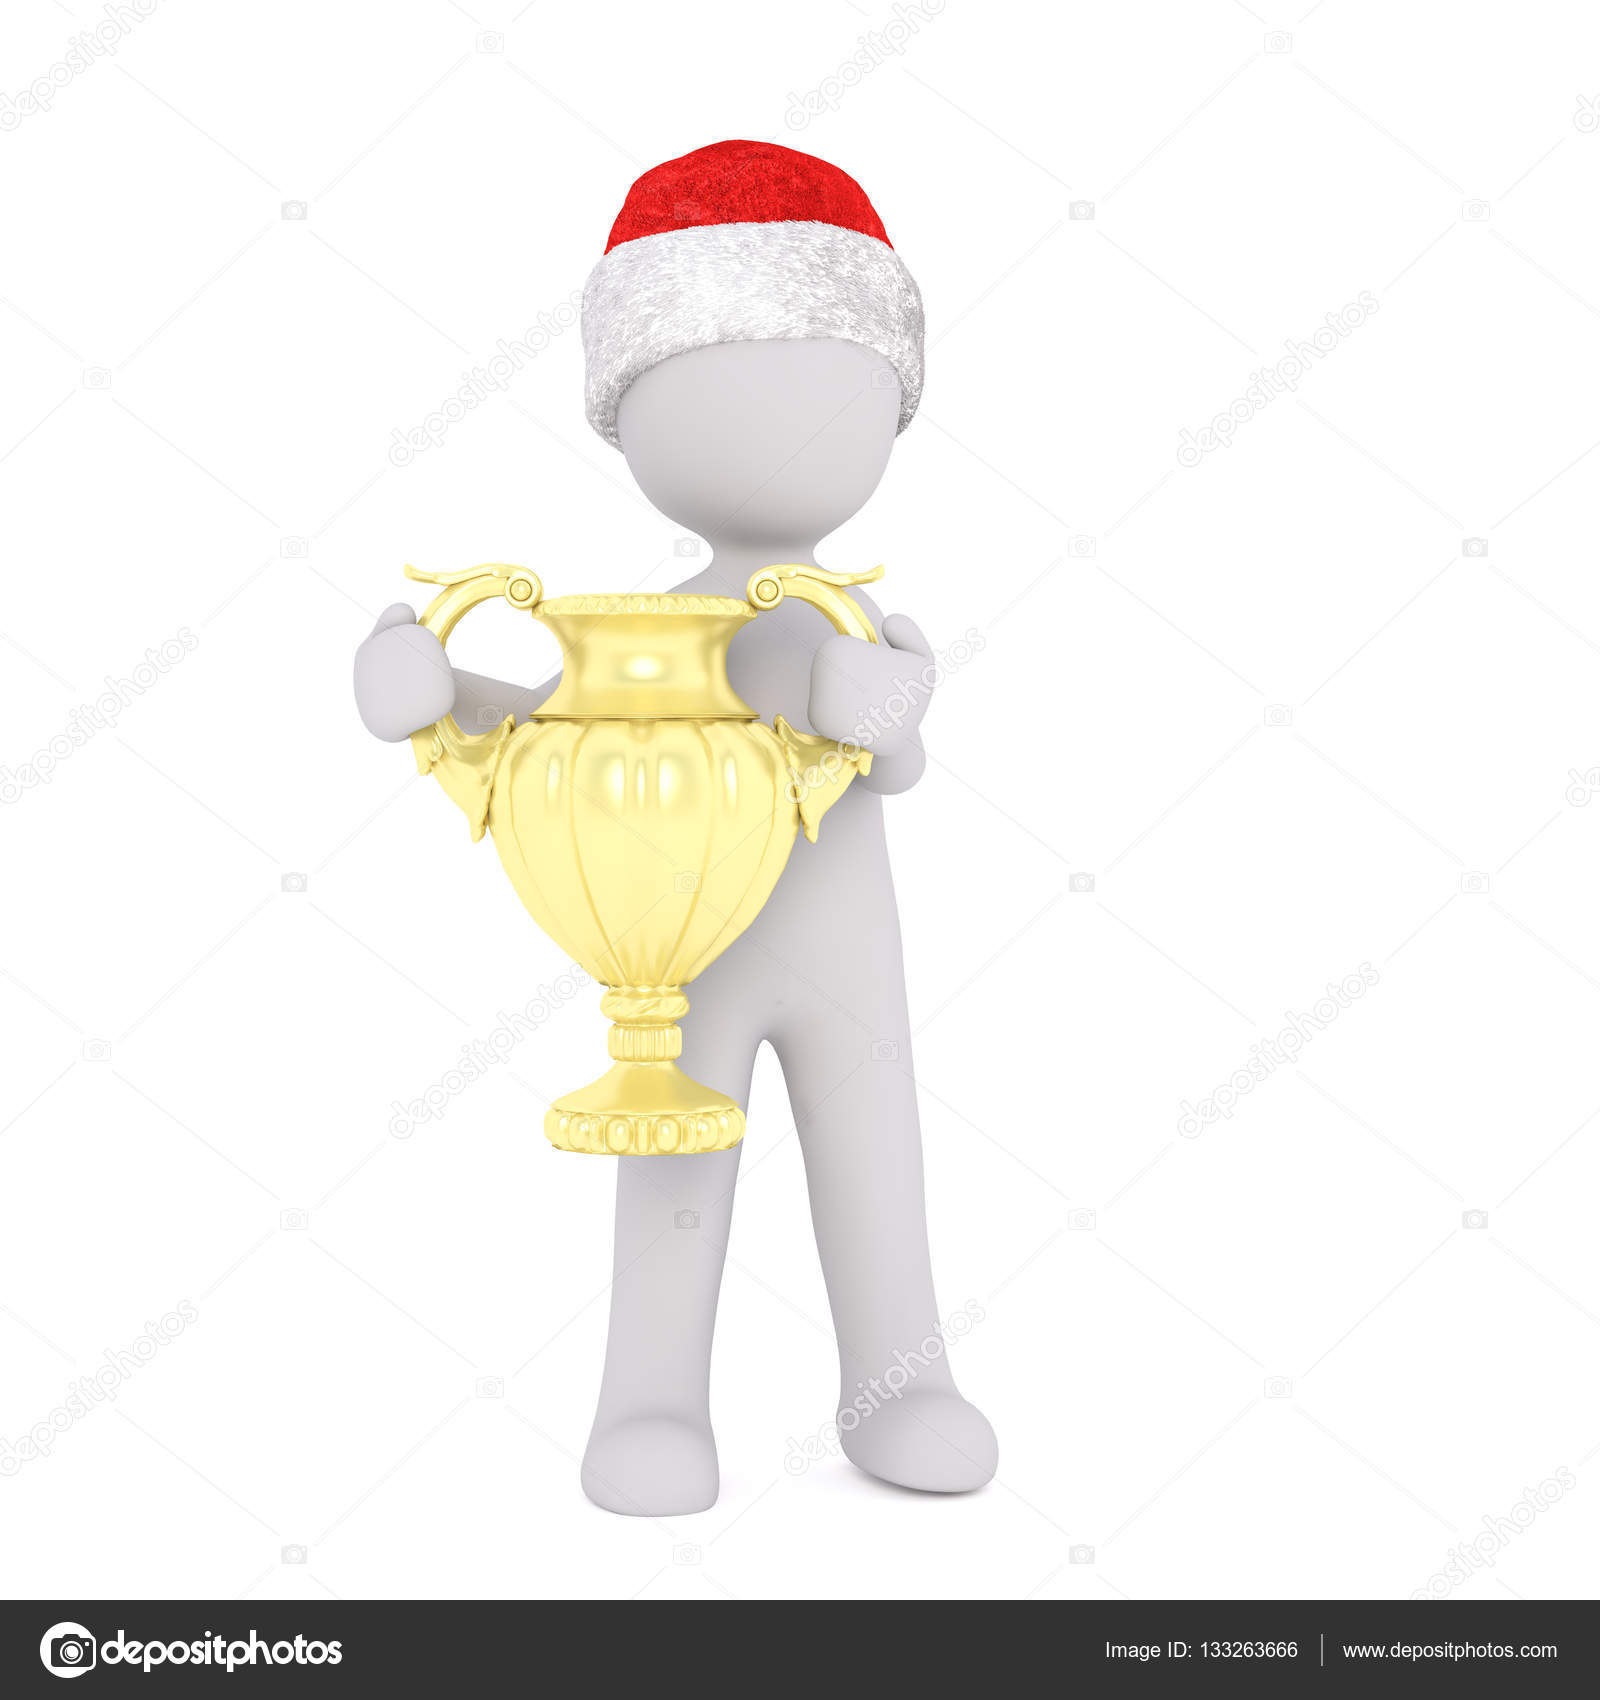 7655c346f0573 3d man holding up a gold winners trophy or cup after winning a competition  or race while wearing a red Christmas hat